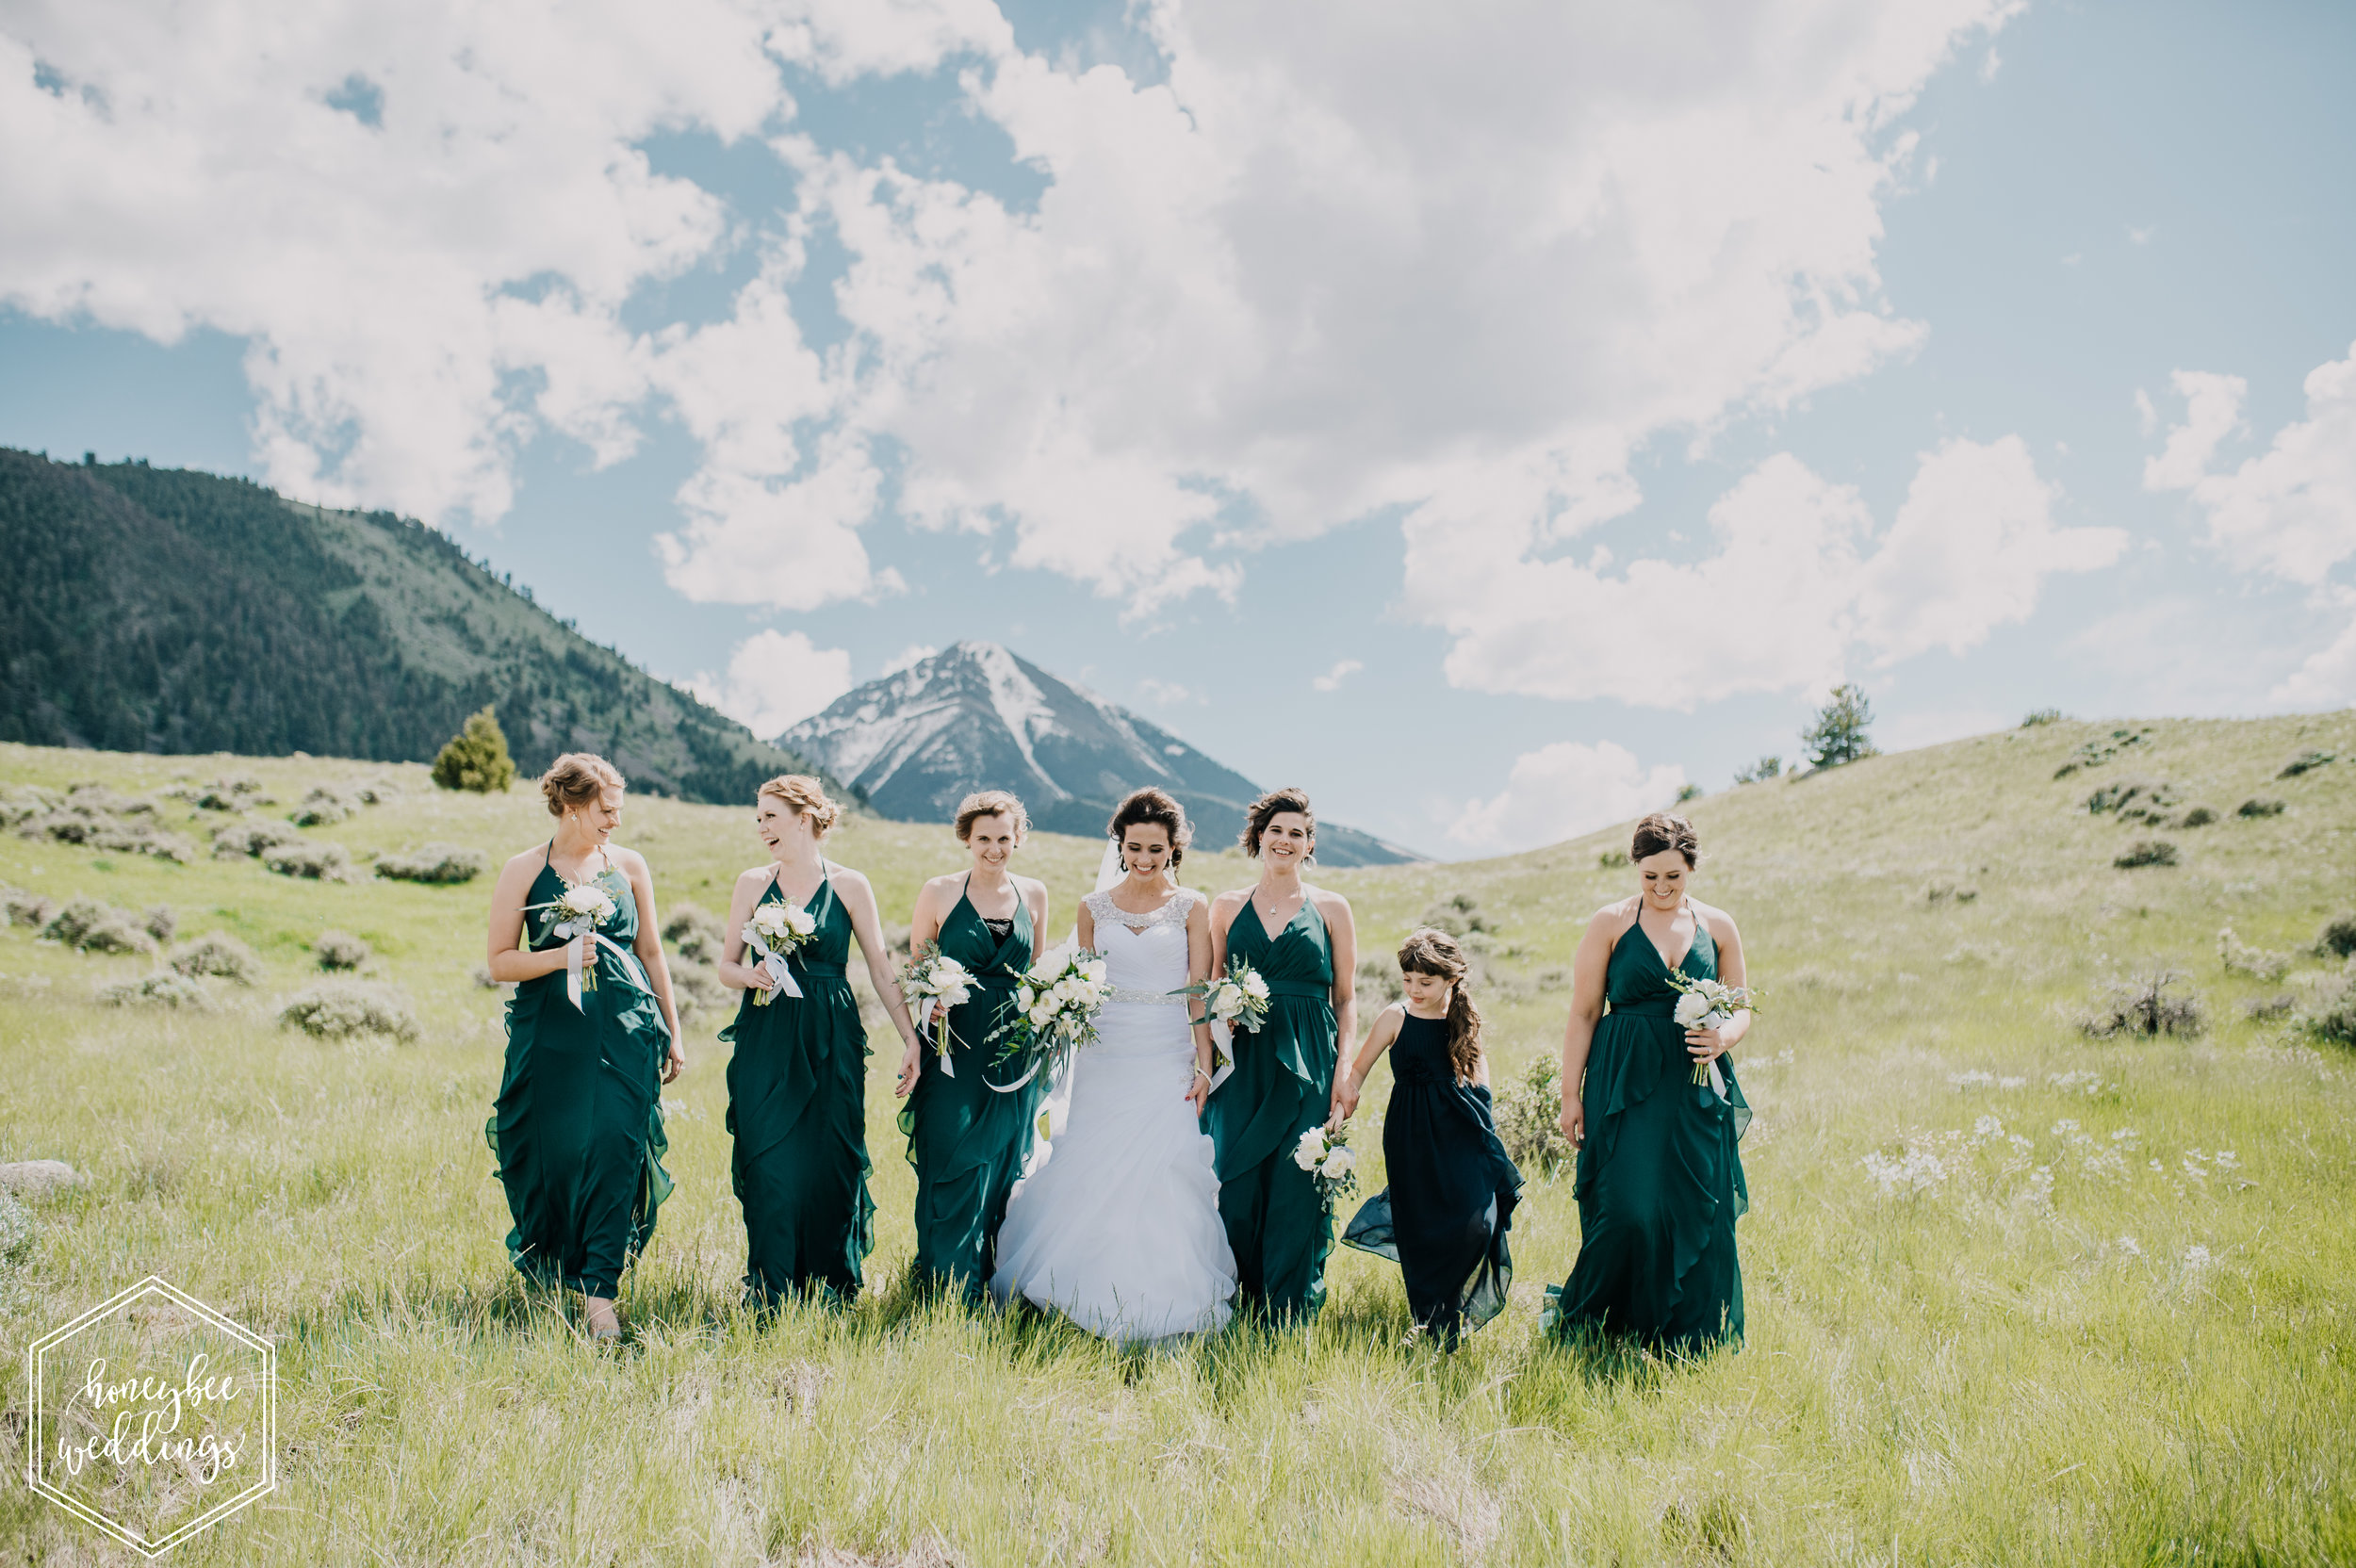 51 Chico Hotsprings Wedding_Bowdino 2018-3044-2.jpg